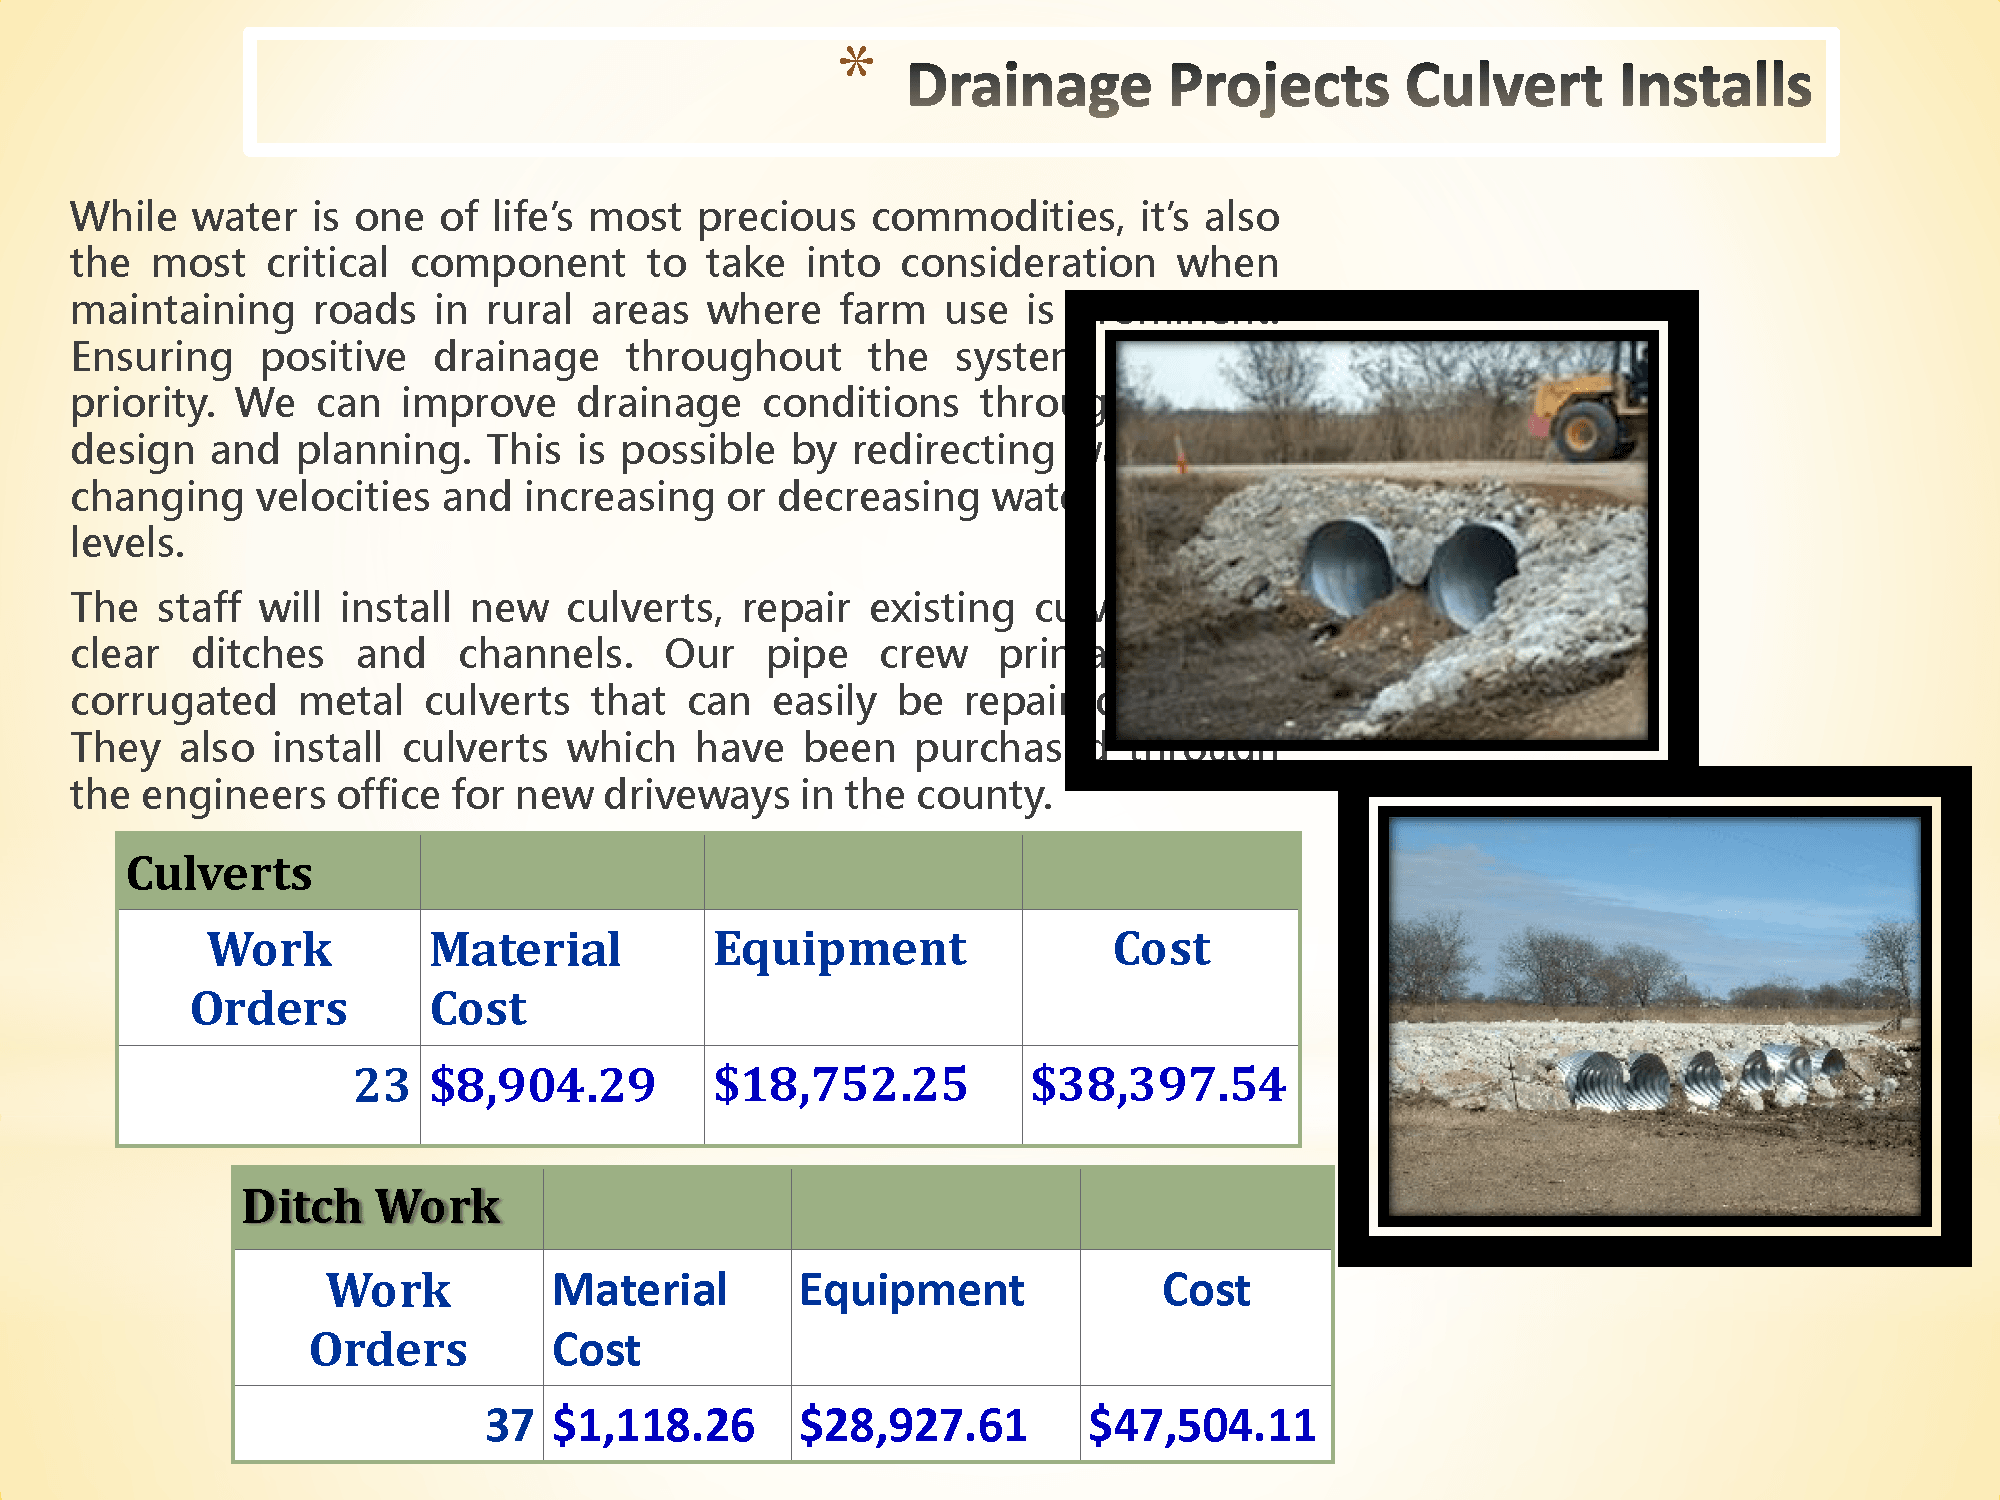 McLennan County Road & Bridge Precinct 4 Drainage Projects